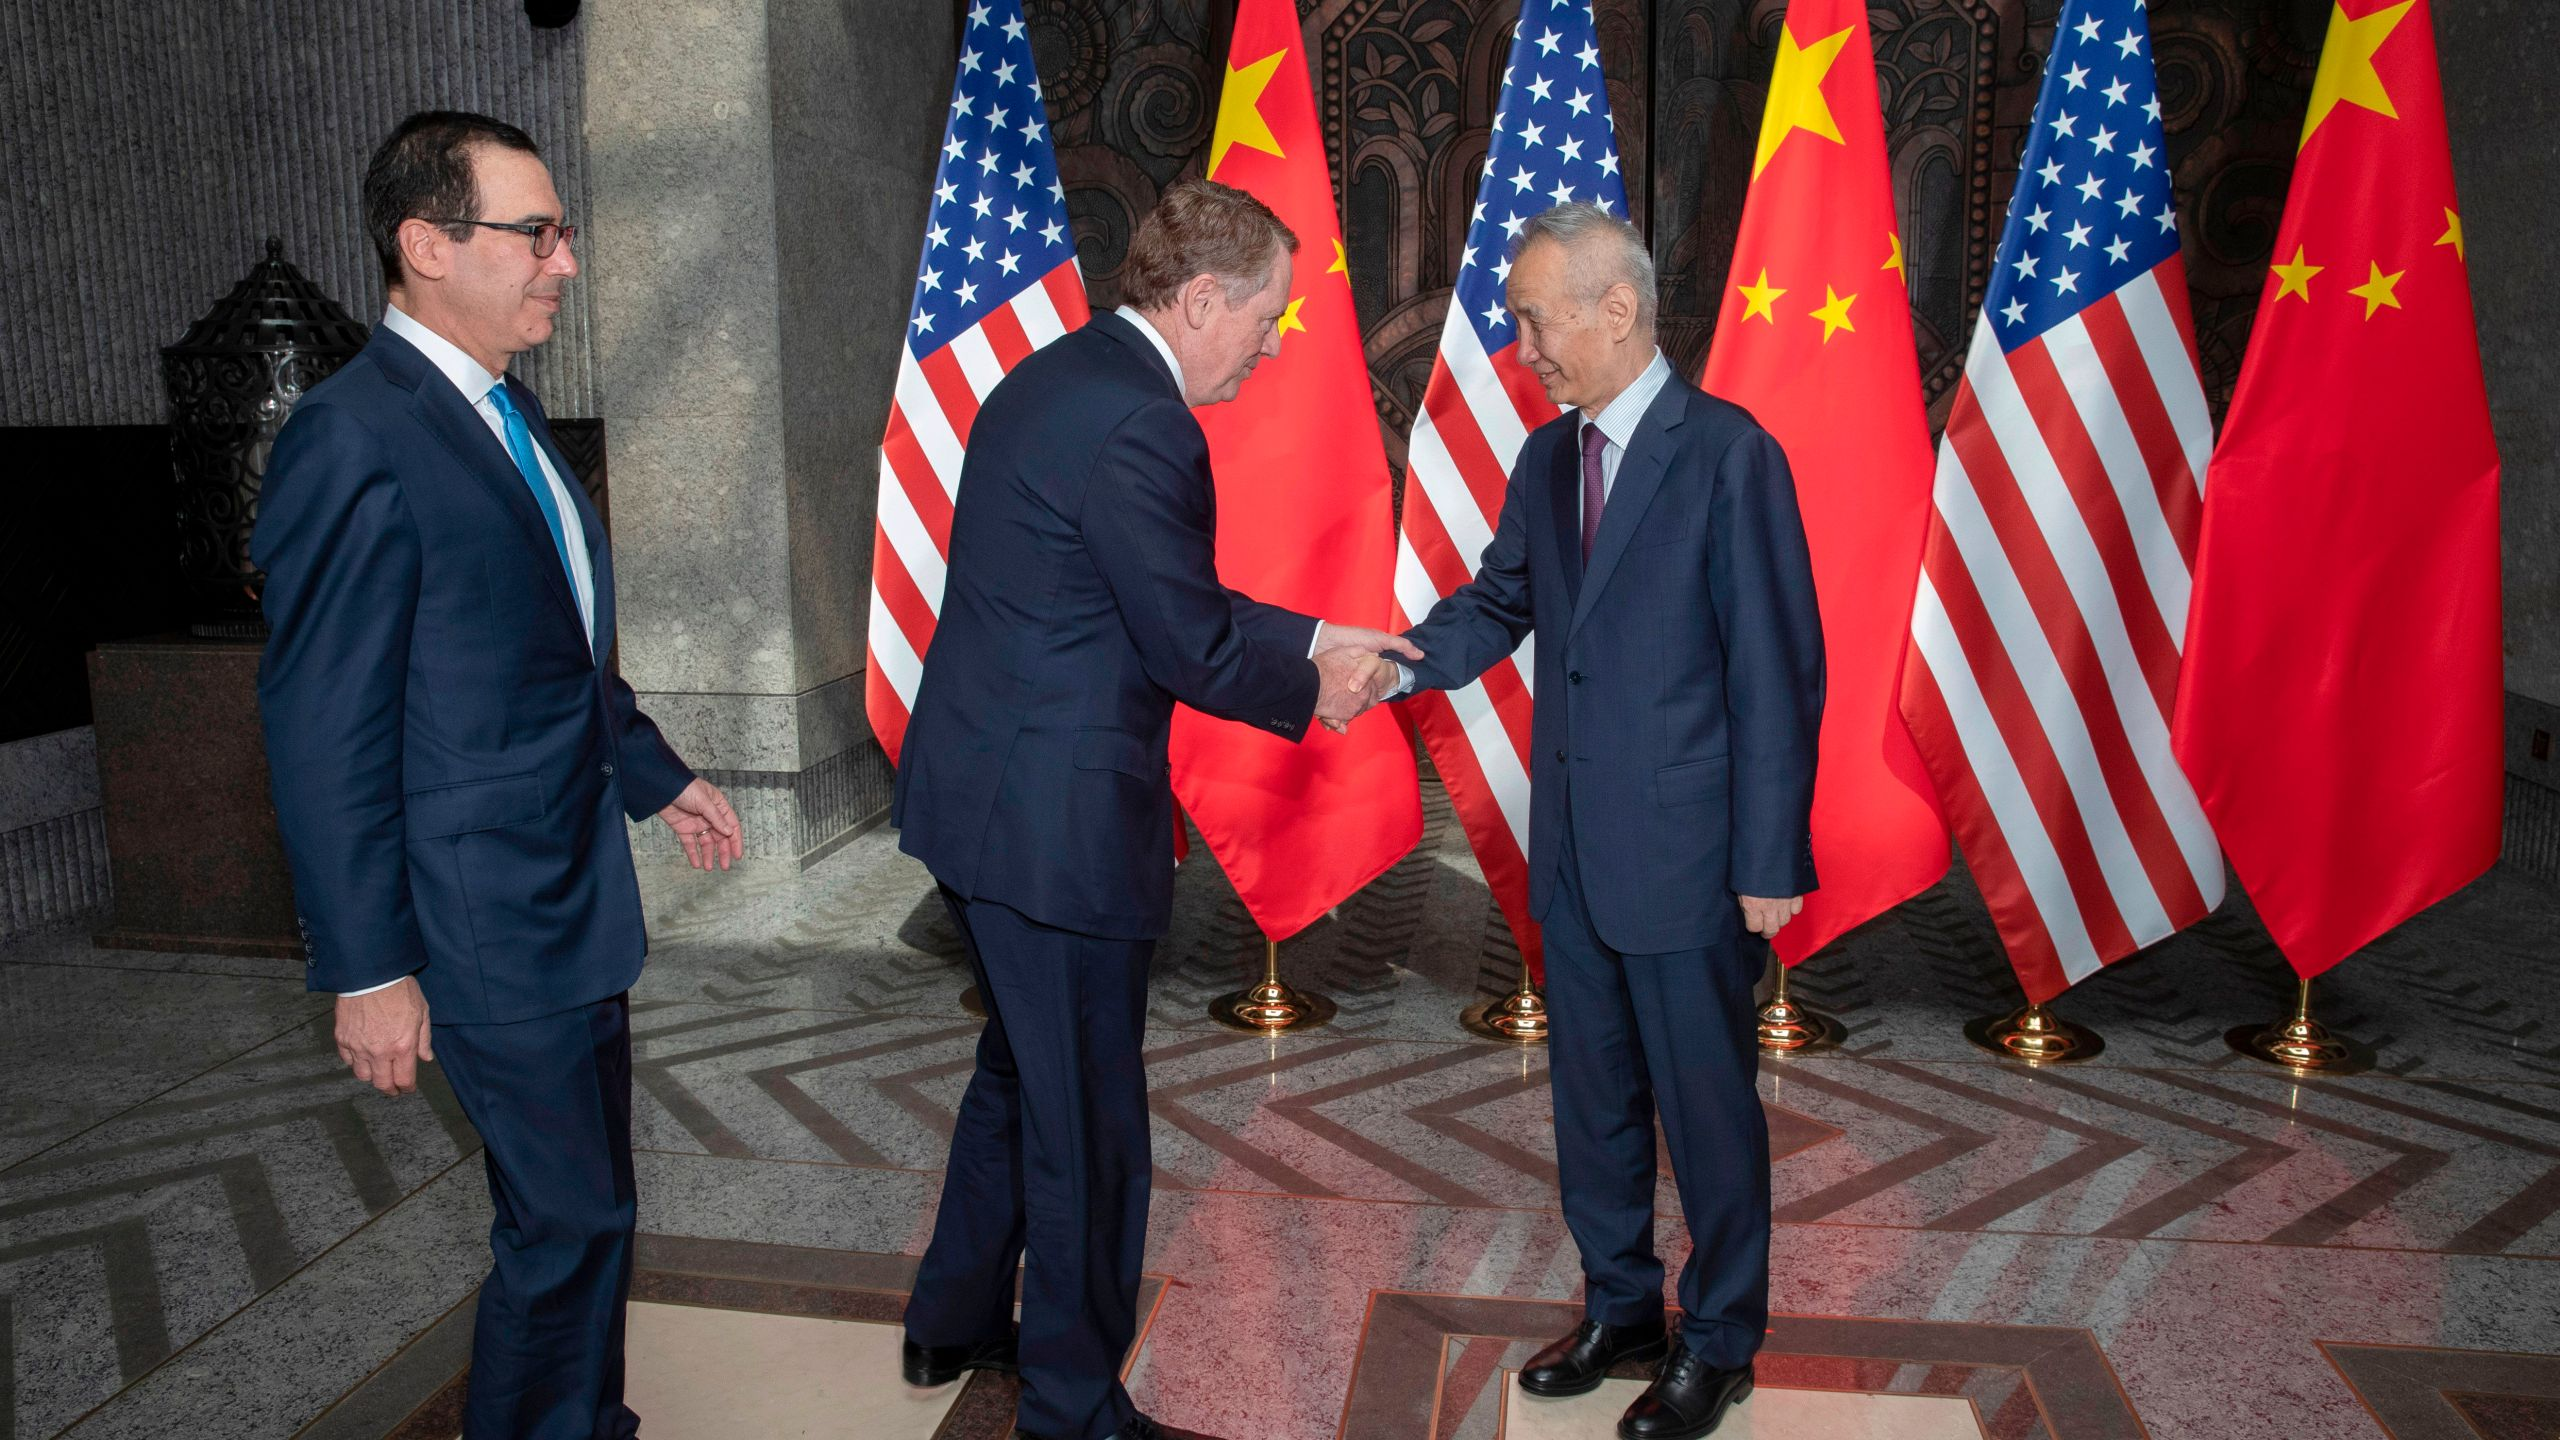 Chinese Vice Premier Liu He (right) welcomes United States Trade Representative Robert Lighthizer (center) and Treasury Secretary Steven Mnuchin (left) before holding talks at the Xijiao Conference Centre in Shanghai on July 31, 2019. (Credit: NG HAN GUAN/AFP/Getty Images)